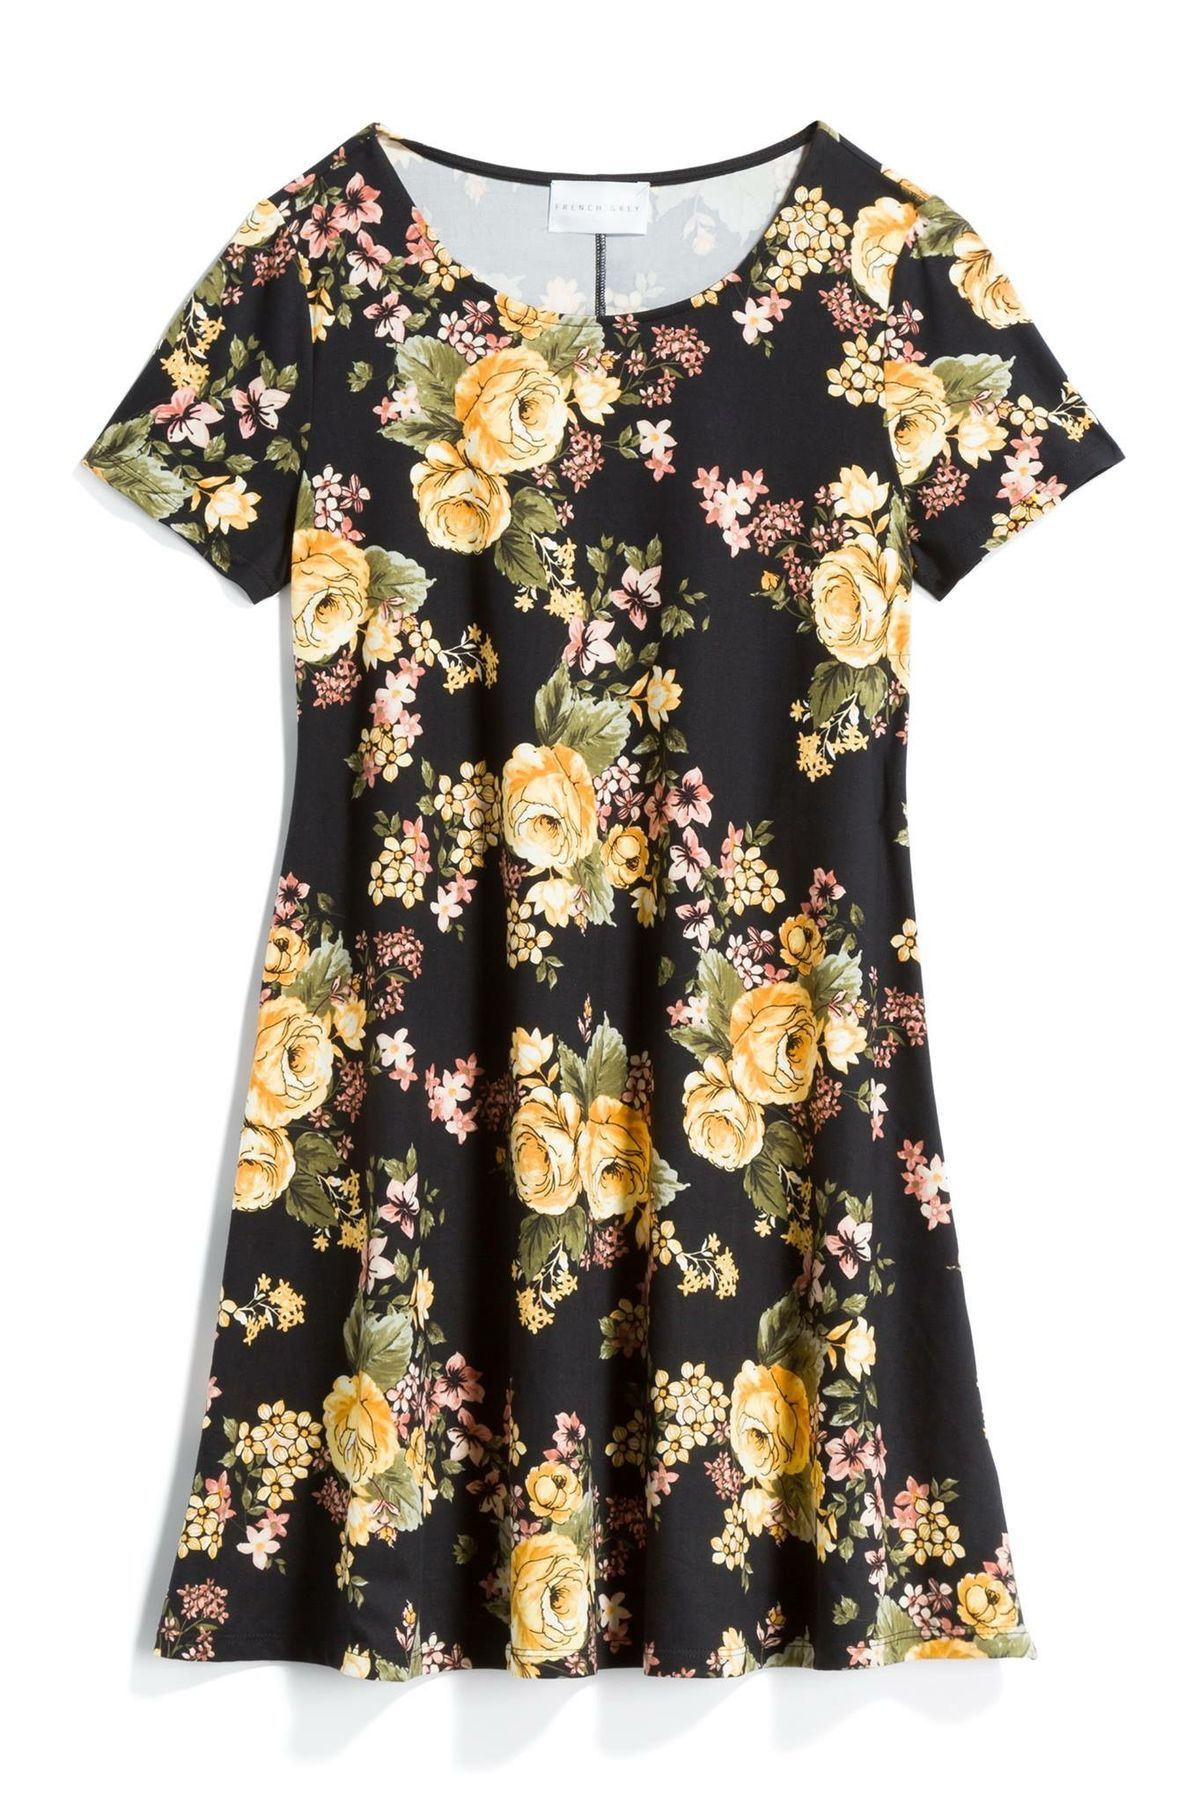 French grey black dress with yellow floral rose print stitch fix